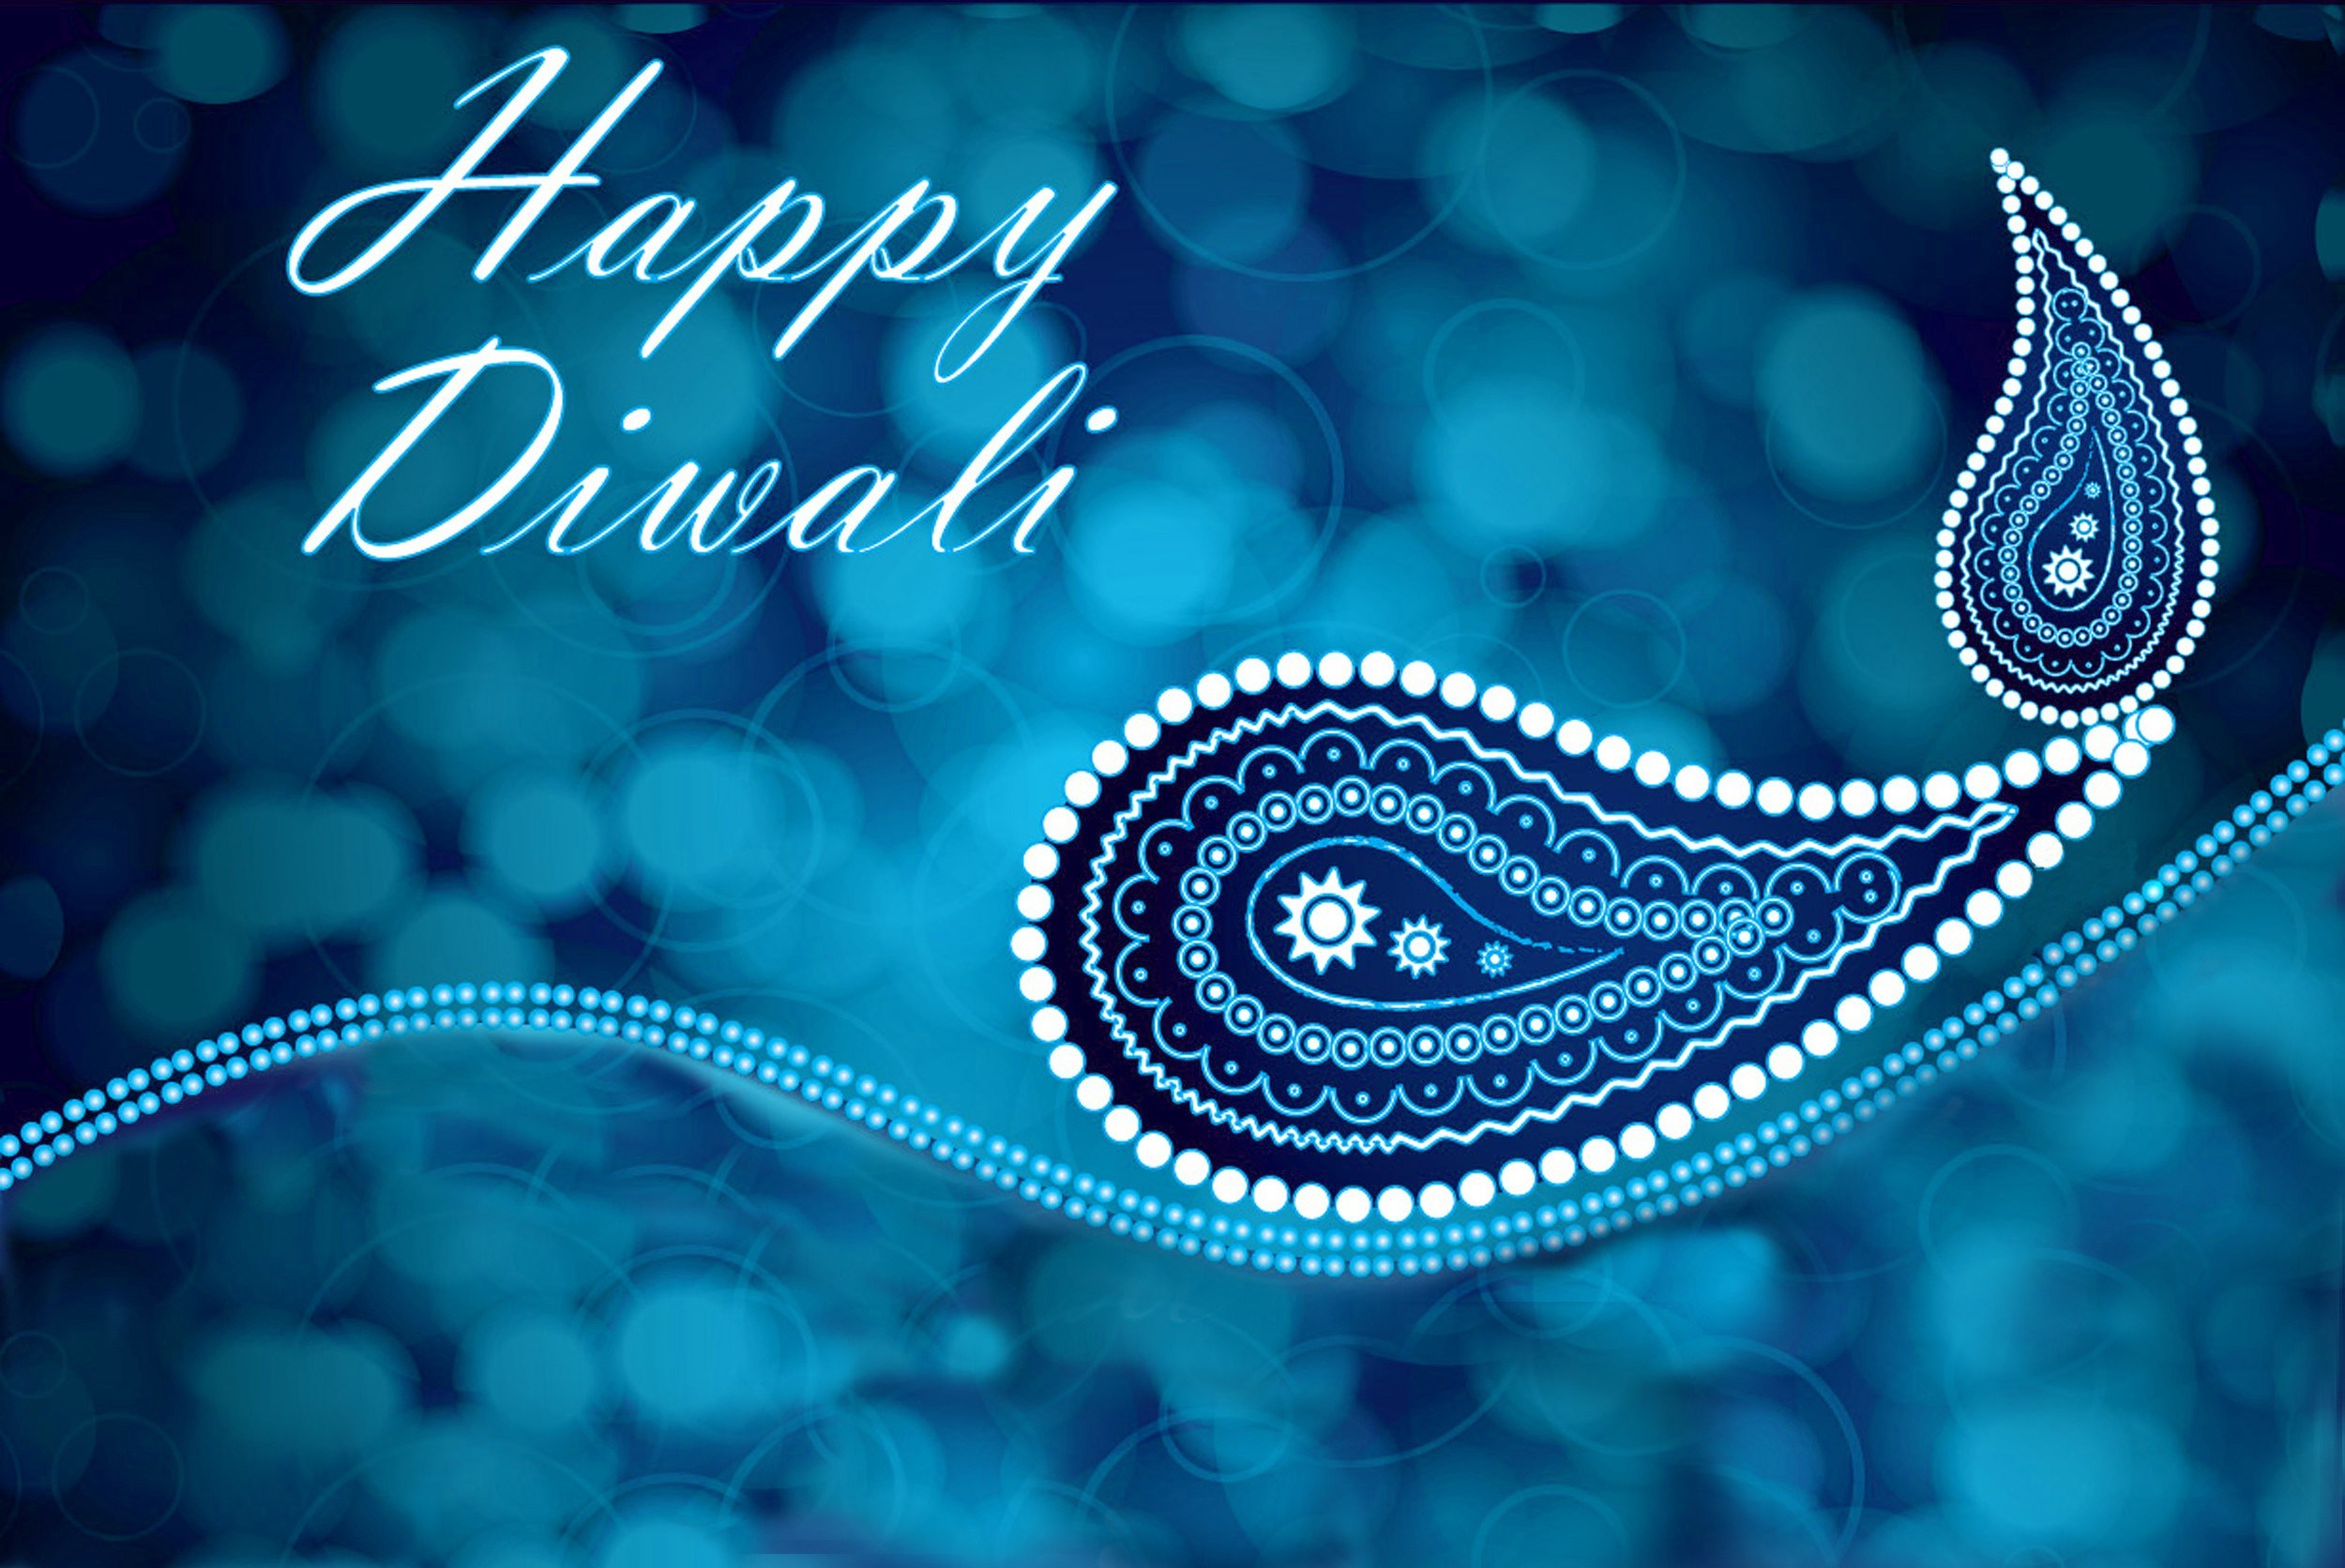 happy deepavali wallpaper hd